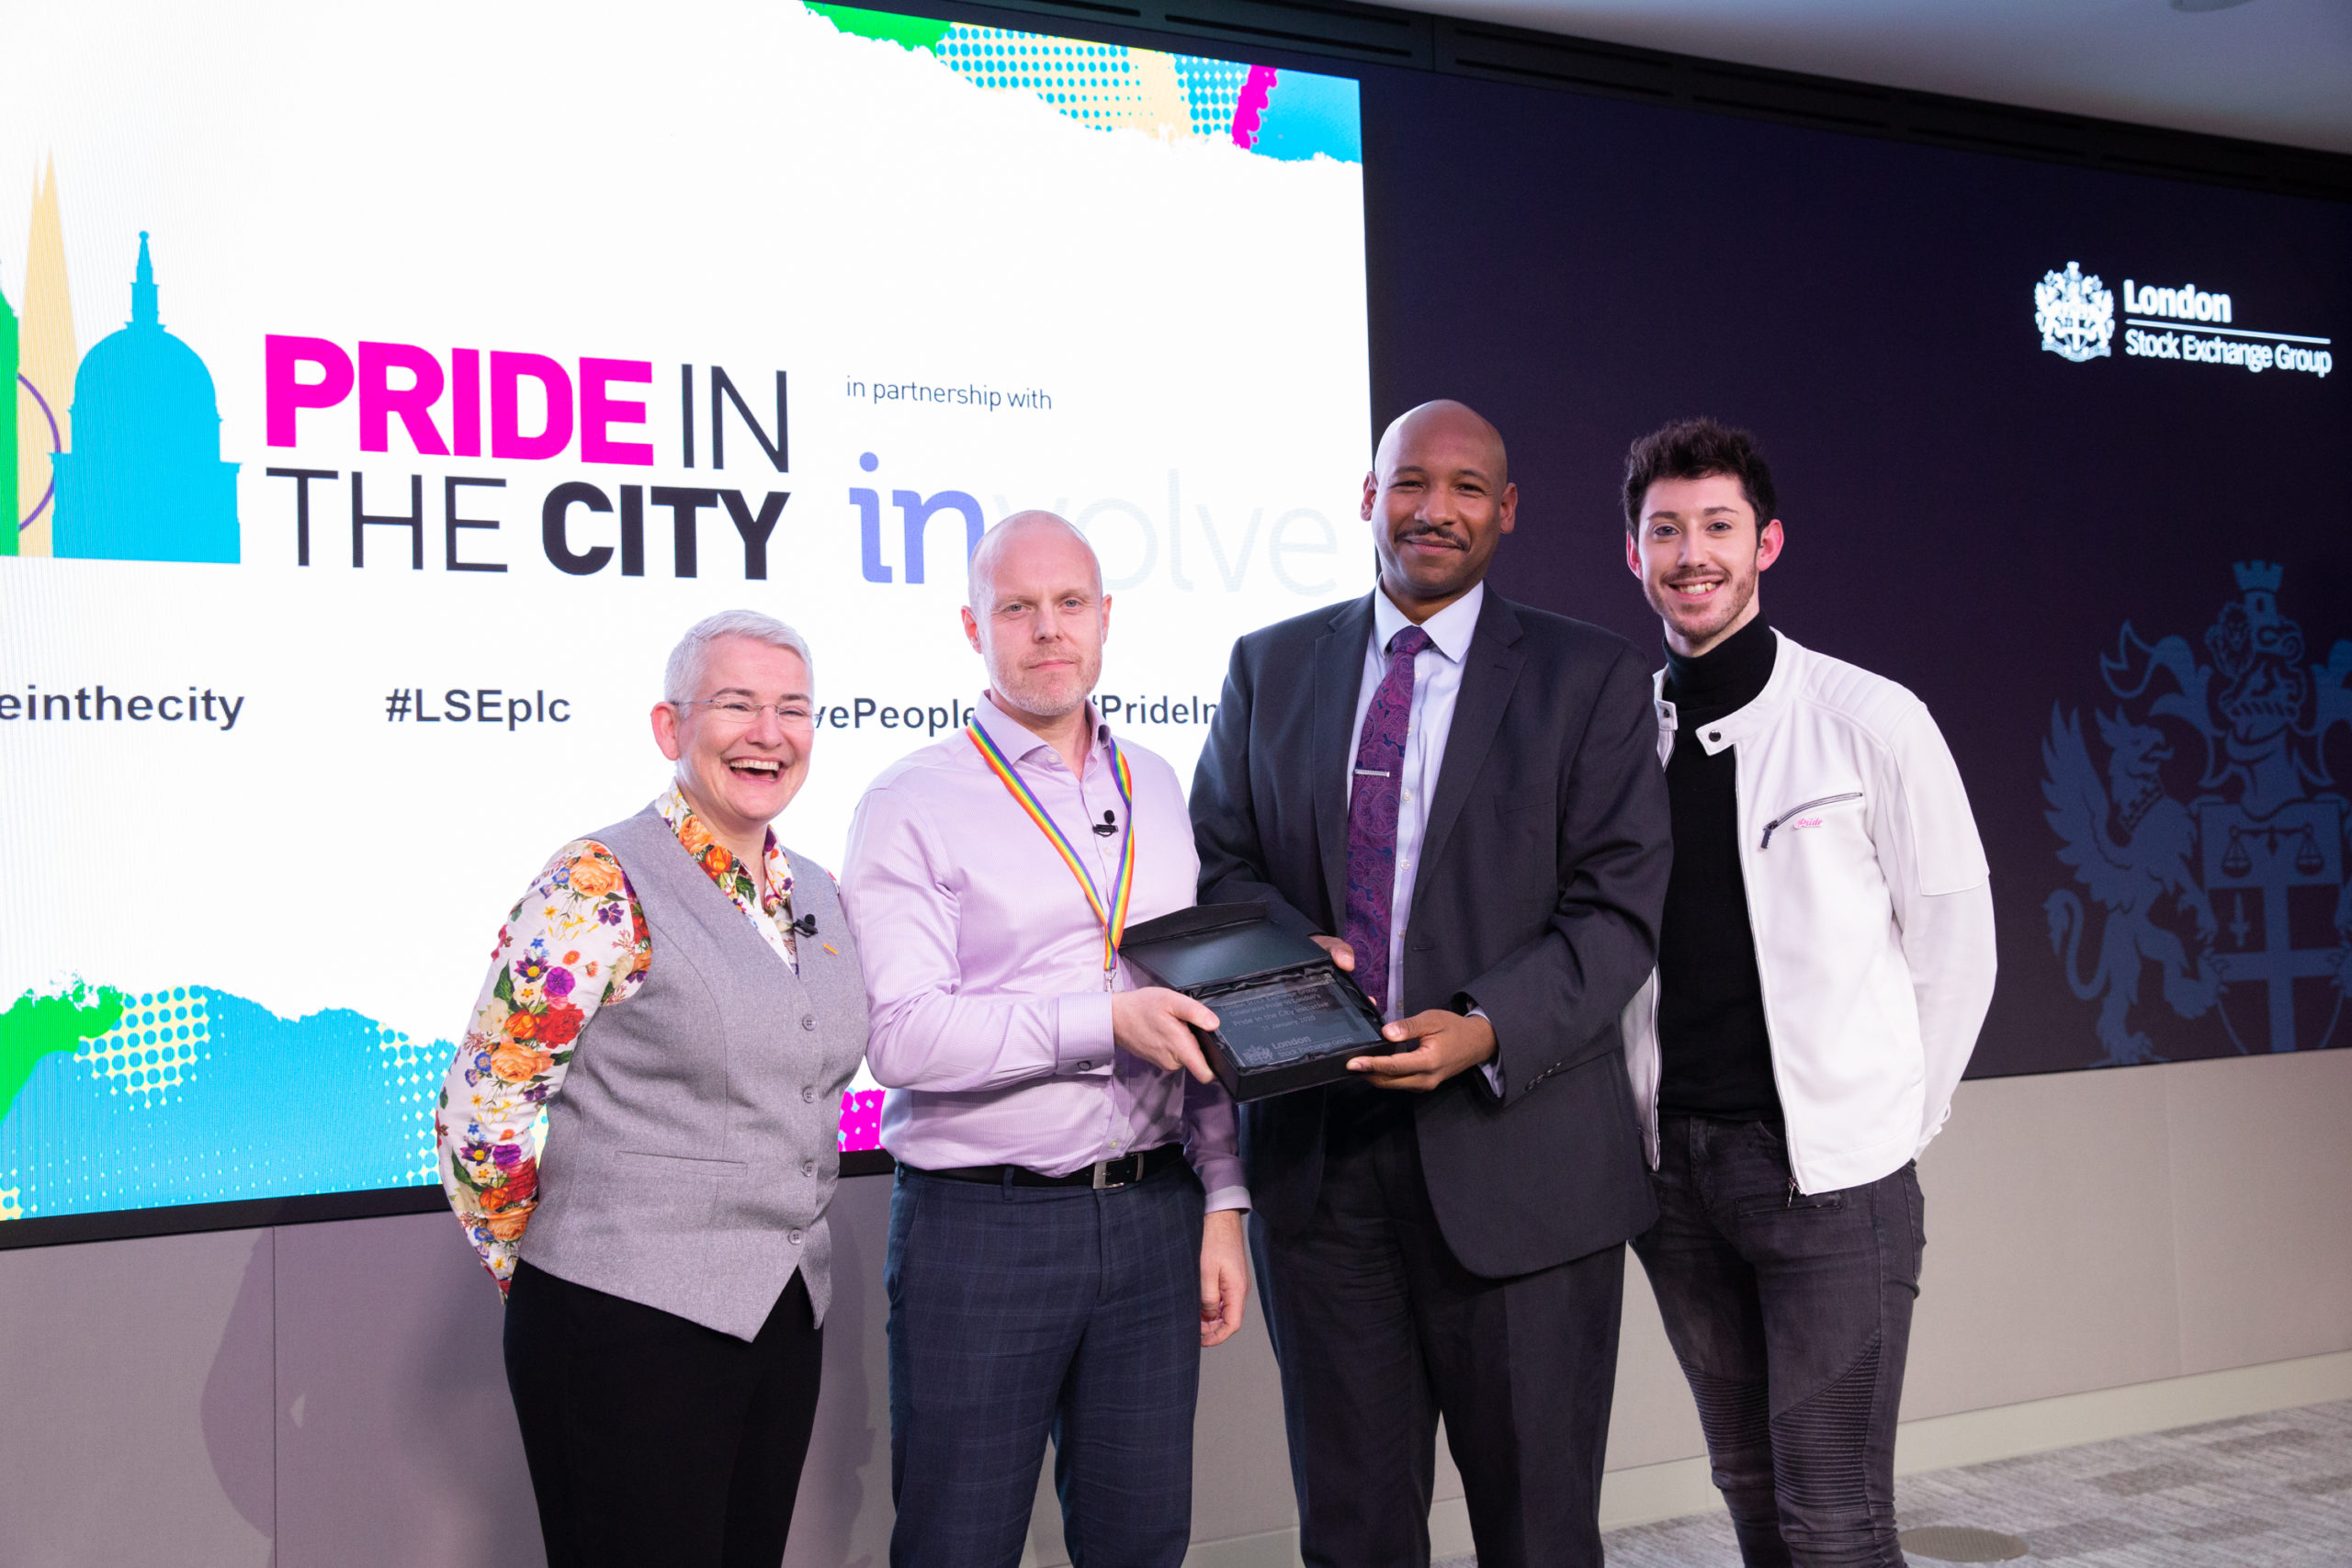 Four people handing over award